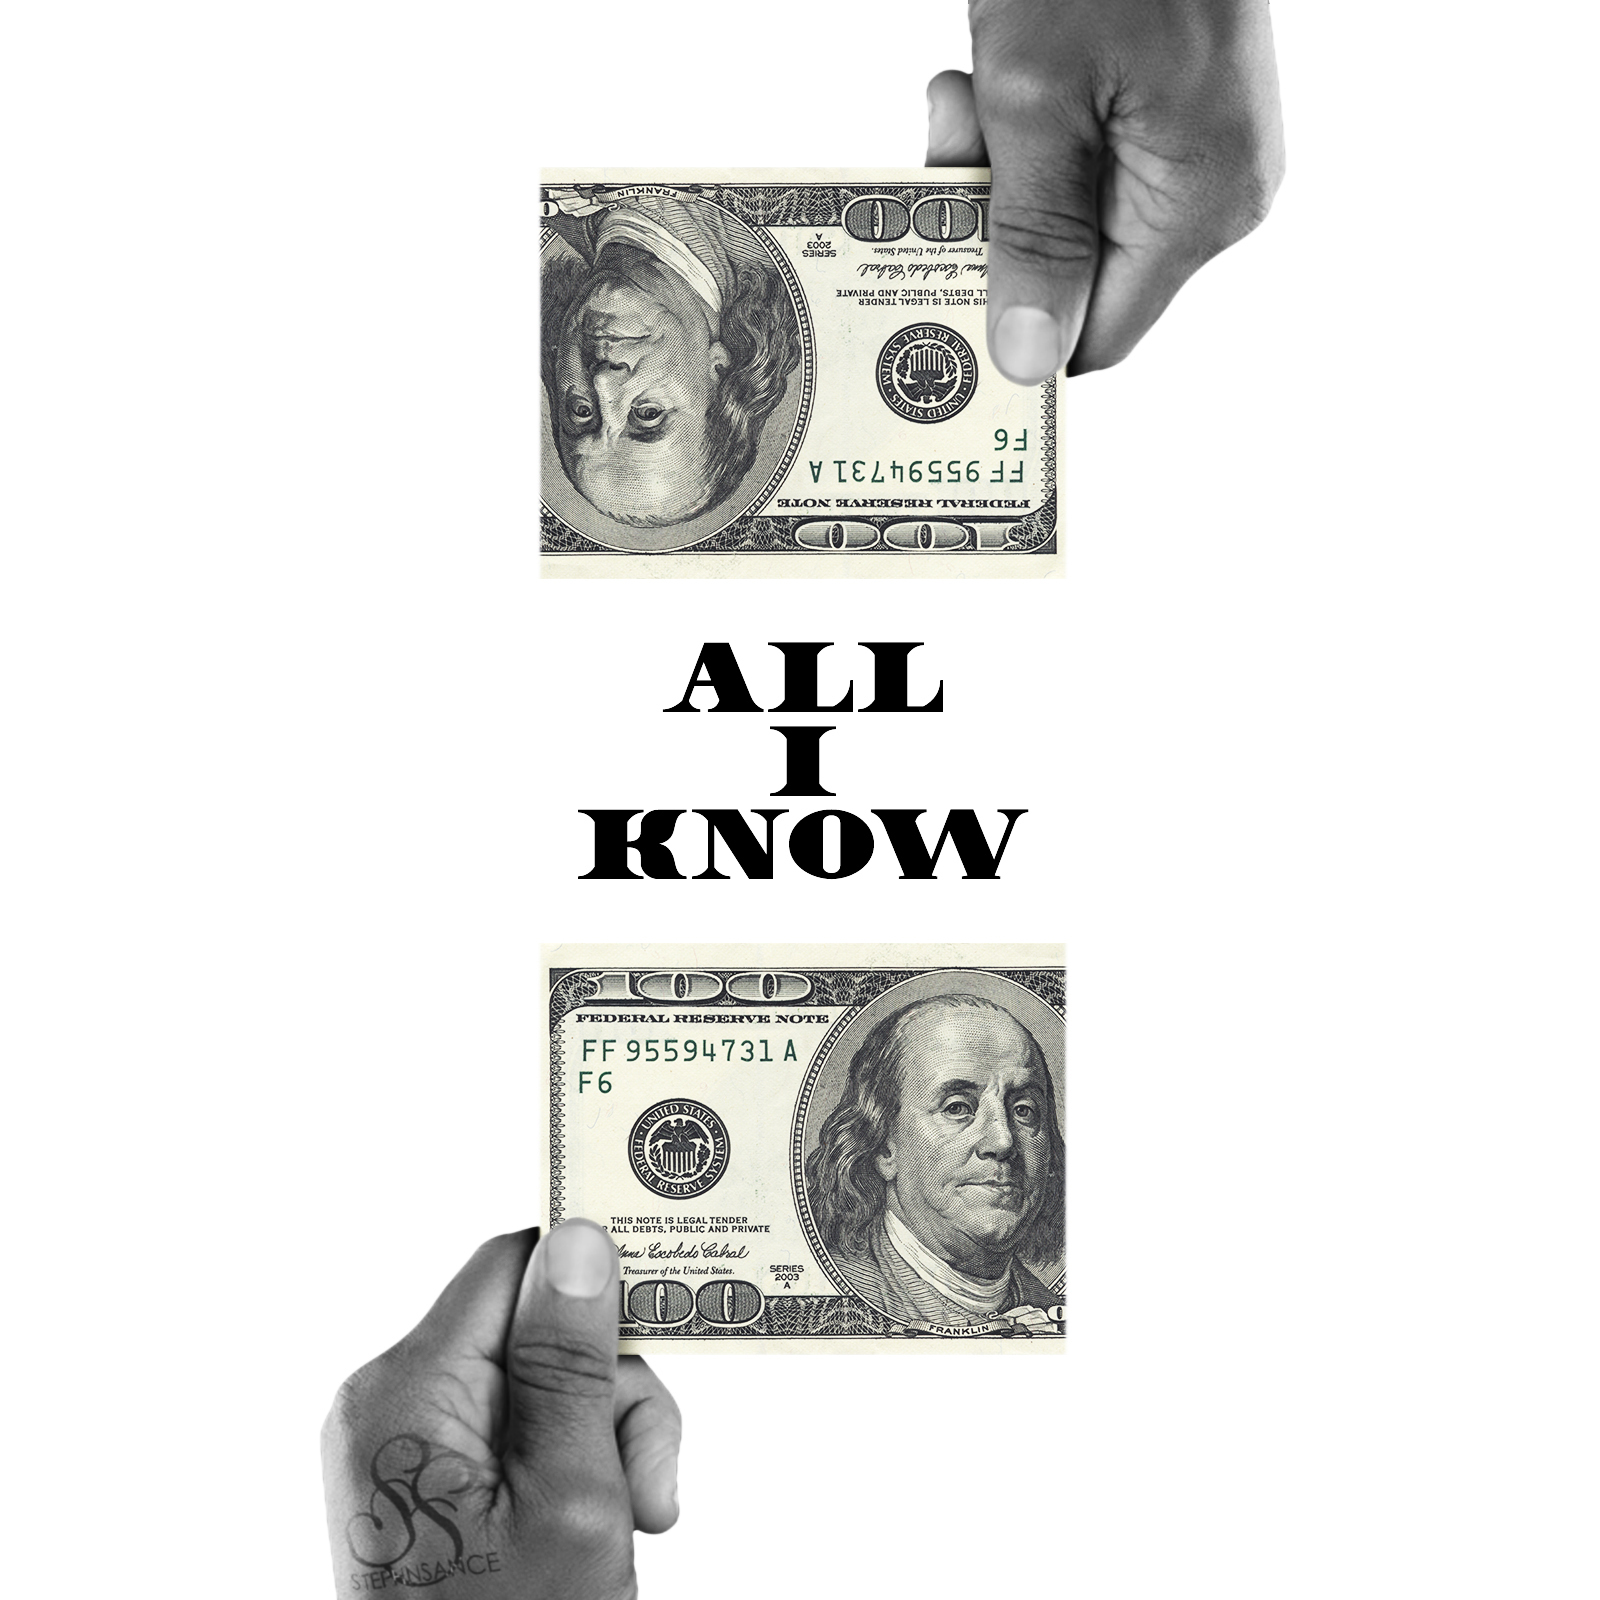 all I know- single artwork